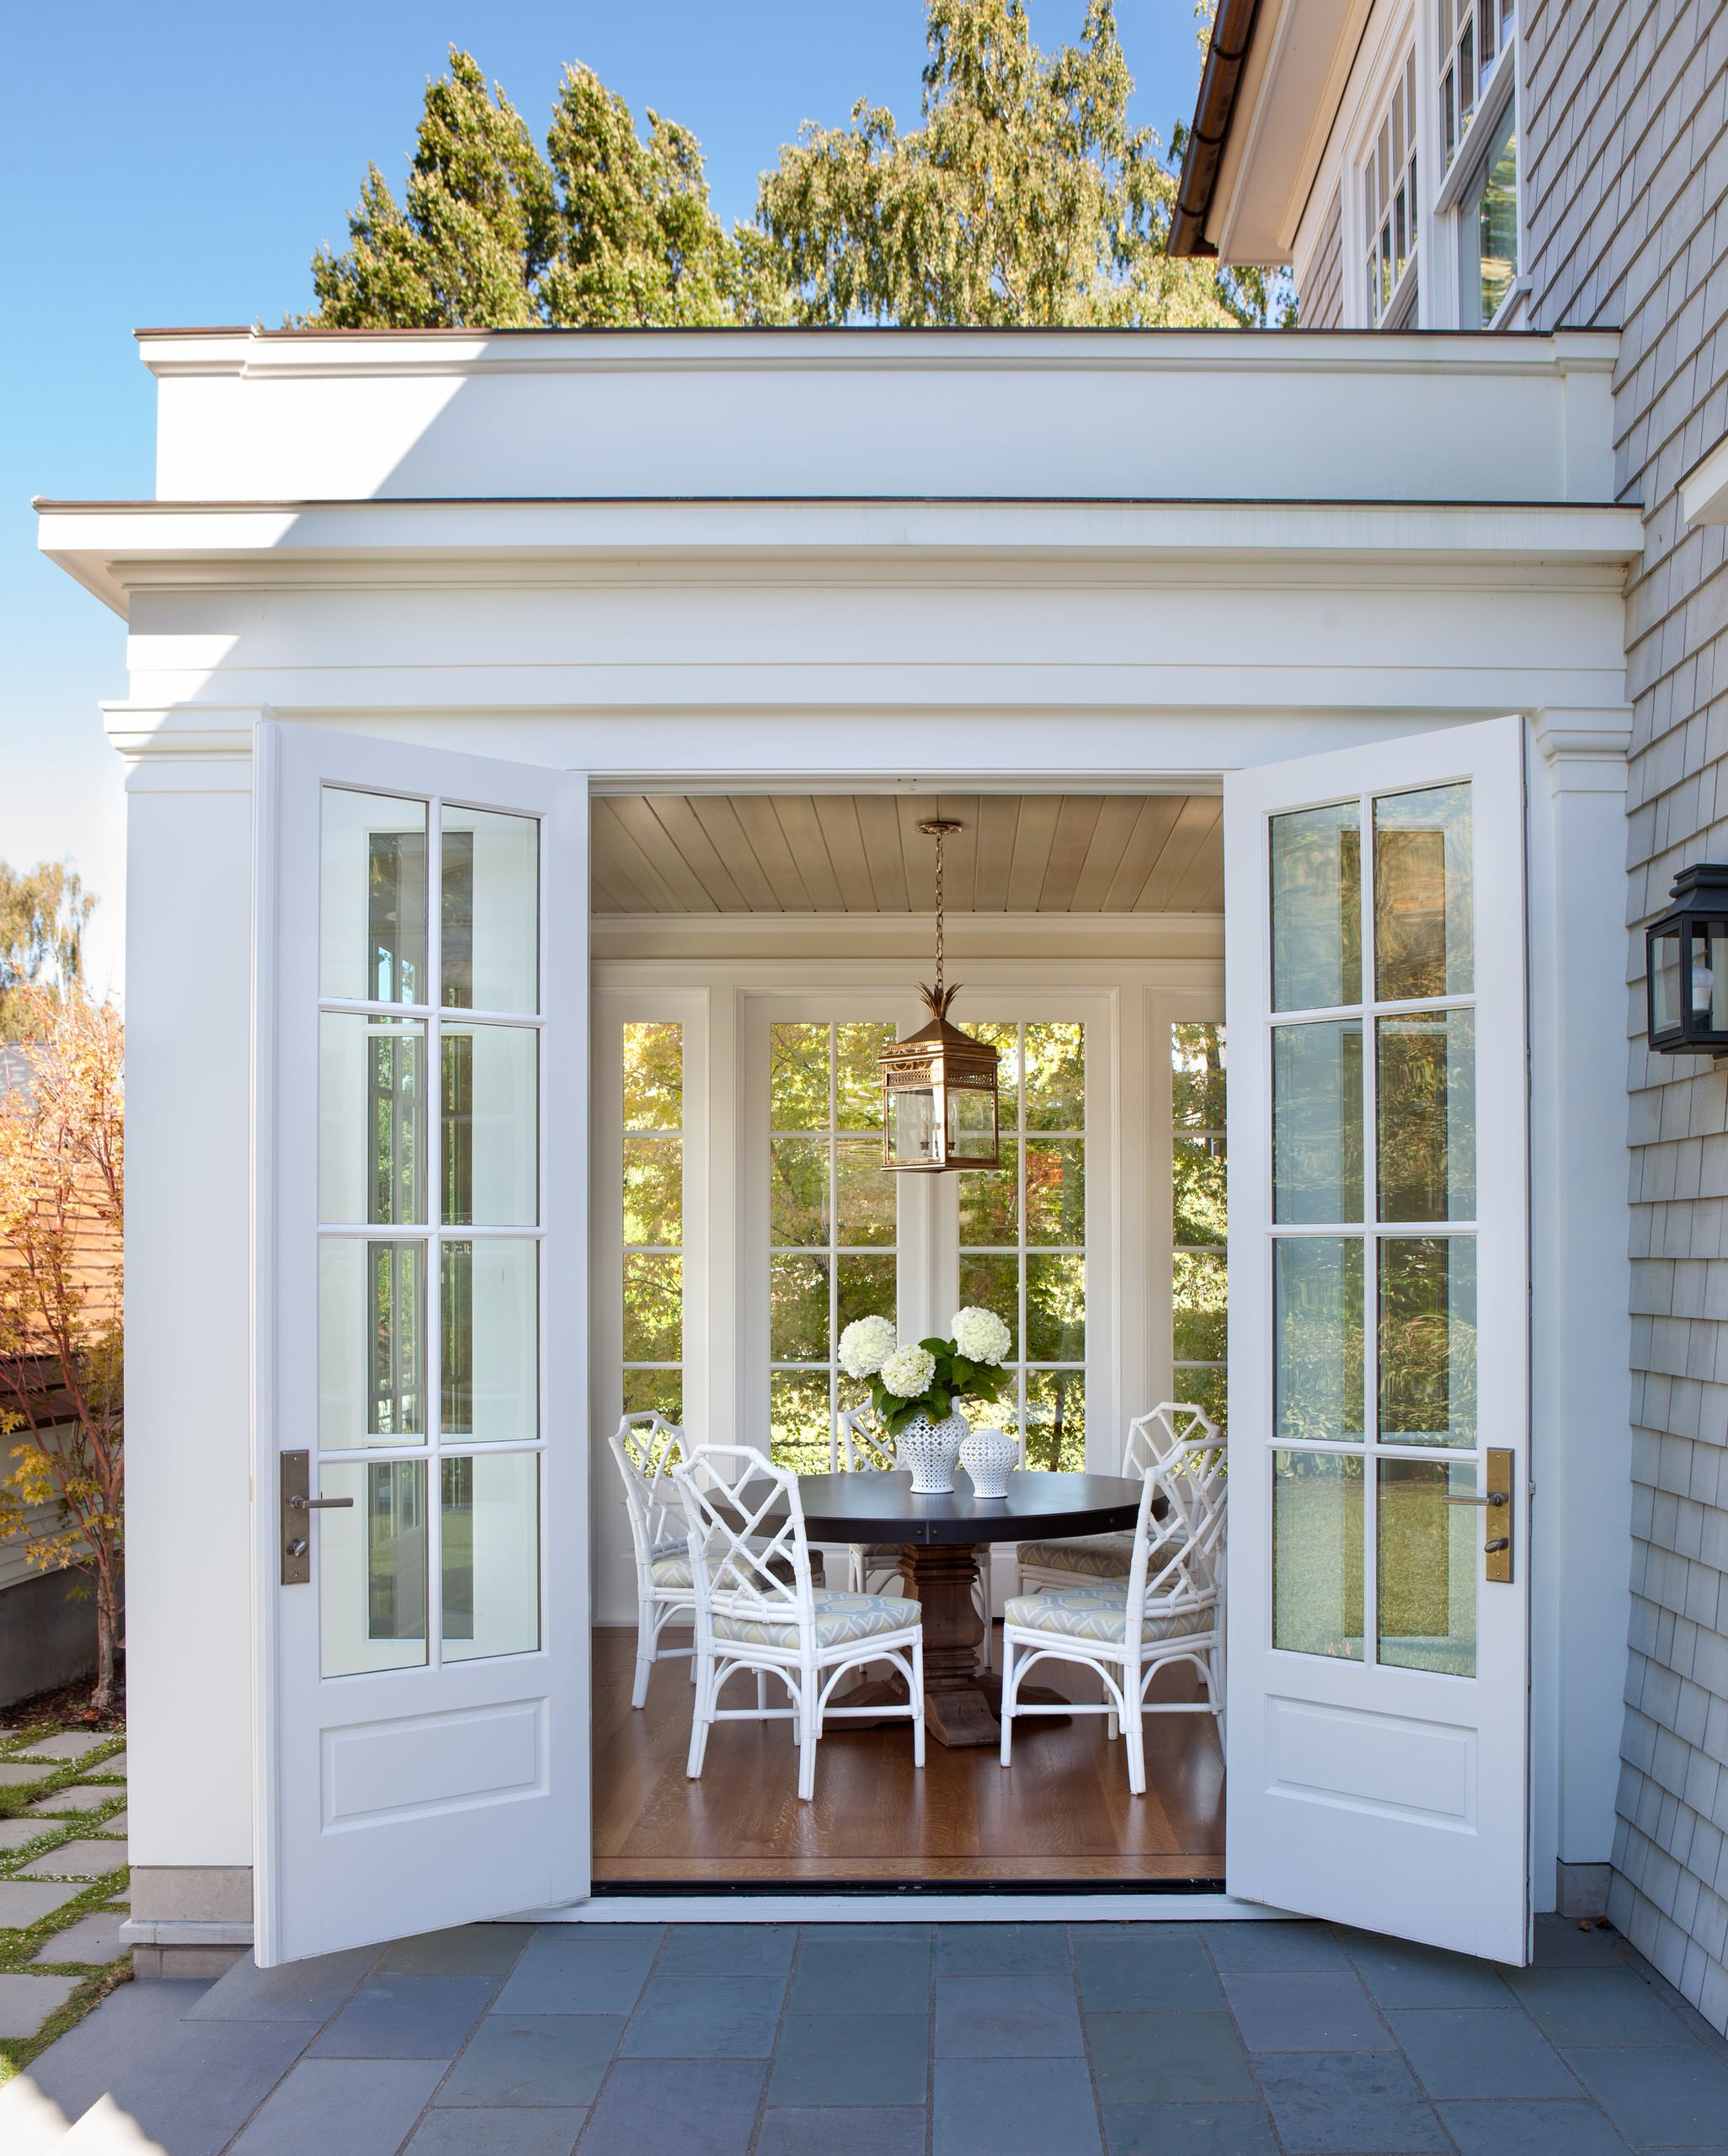 25 Beautiful Small Sunroom Pictures & Ideas  Houzz